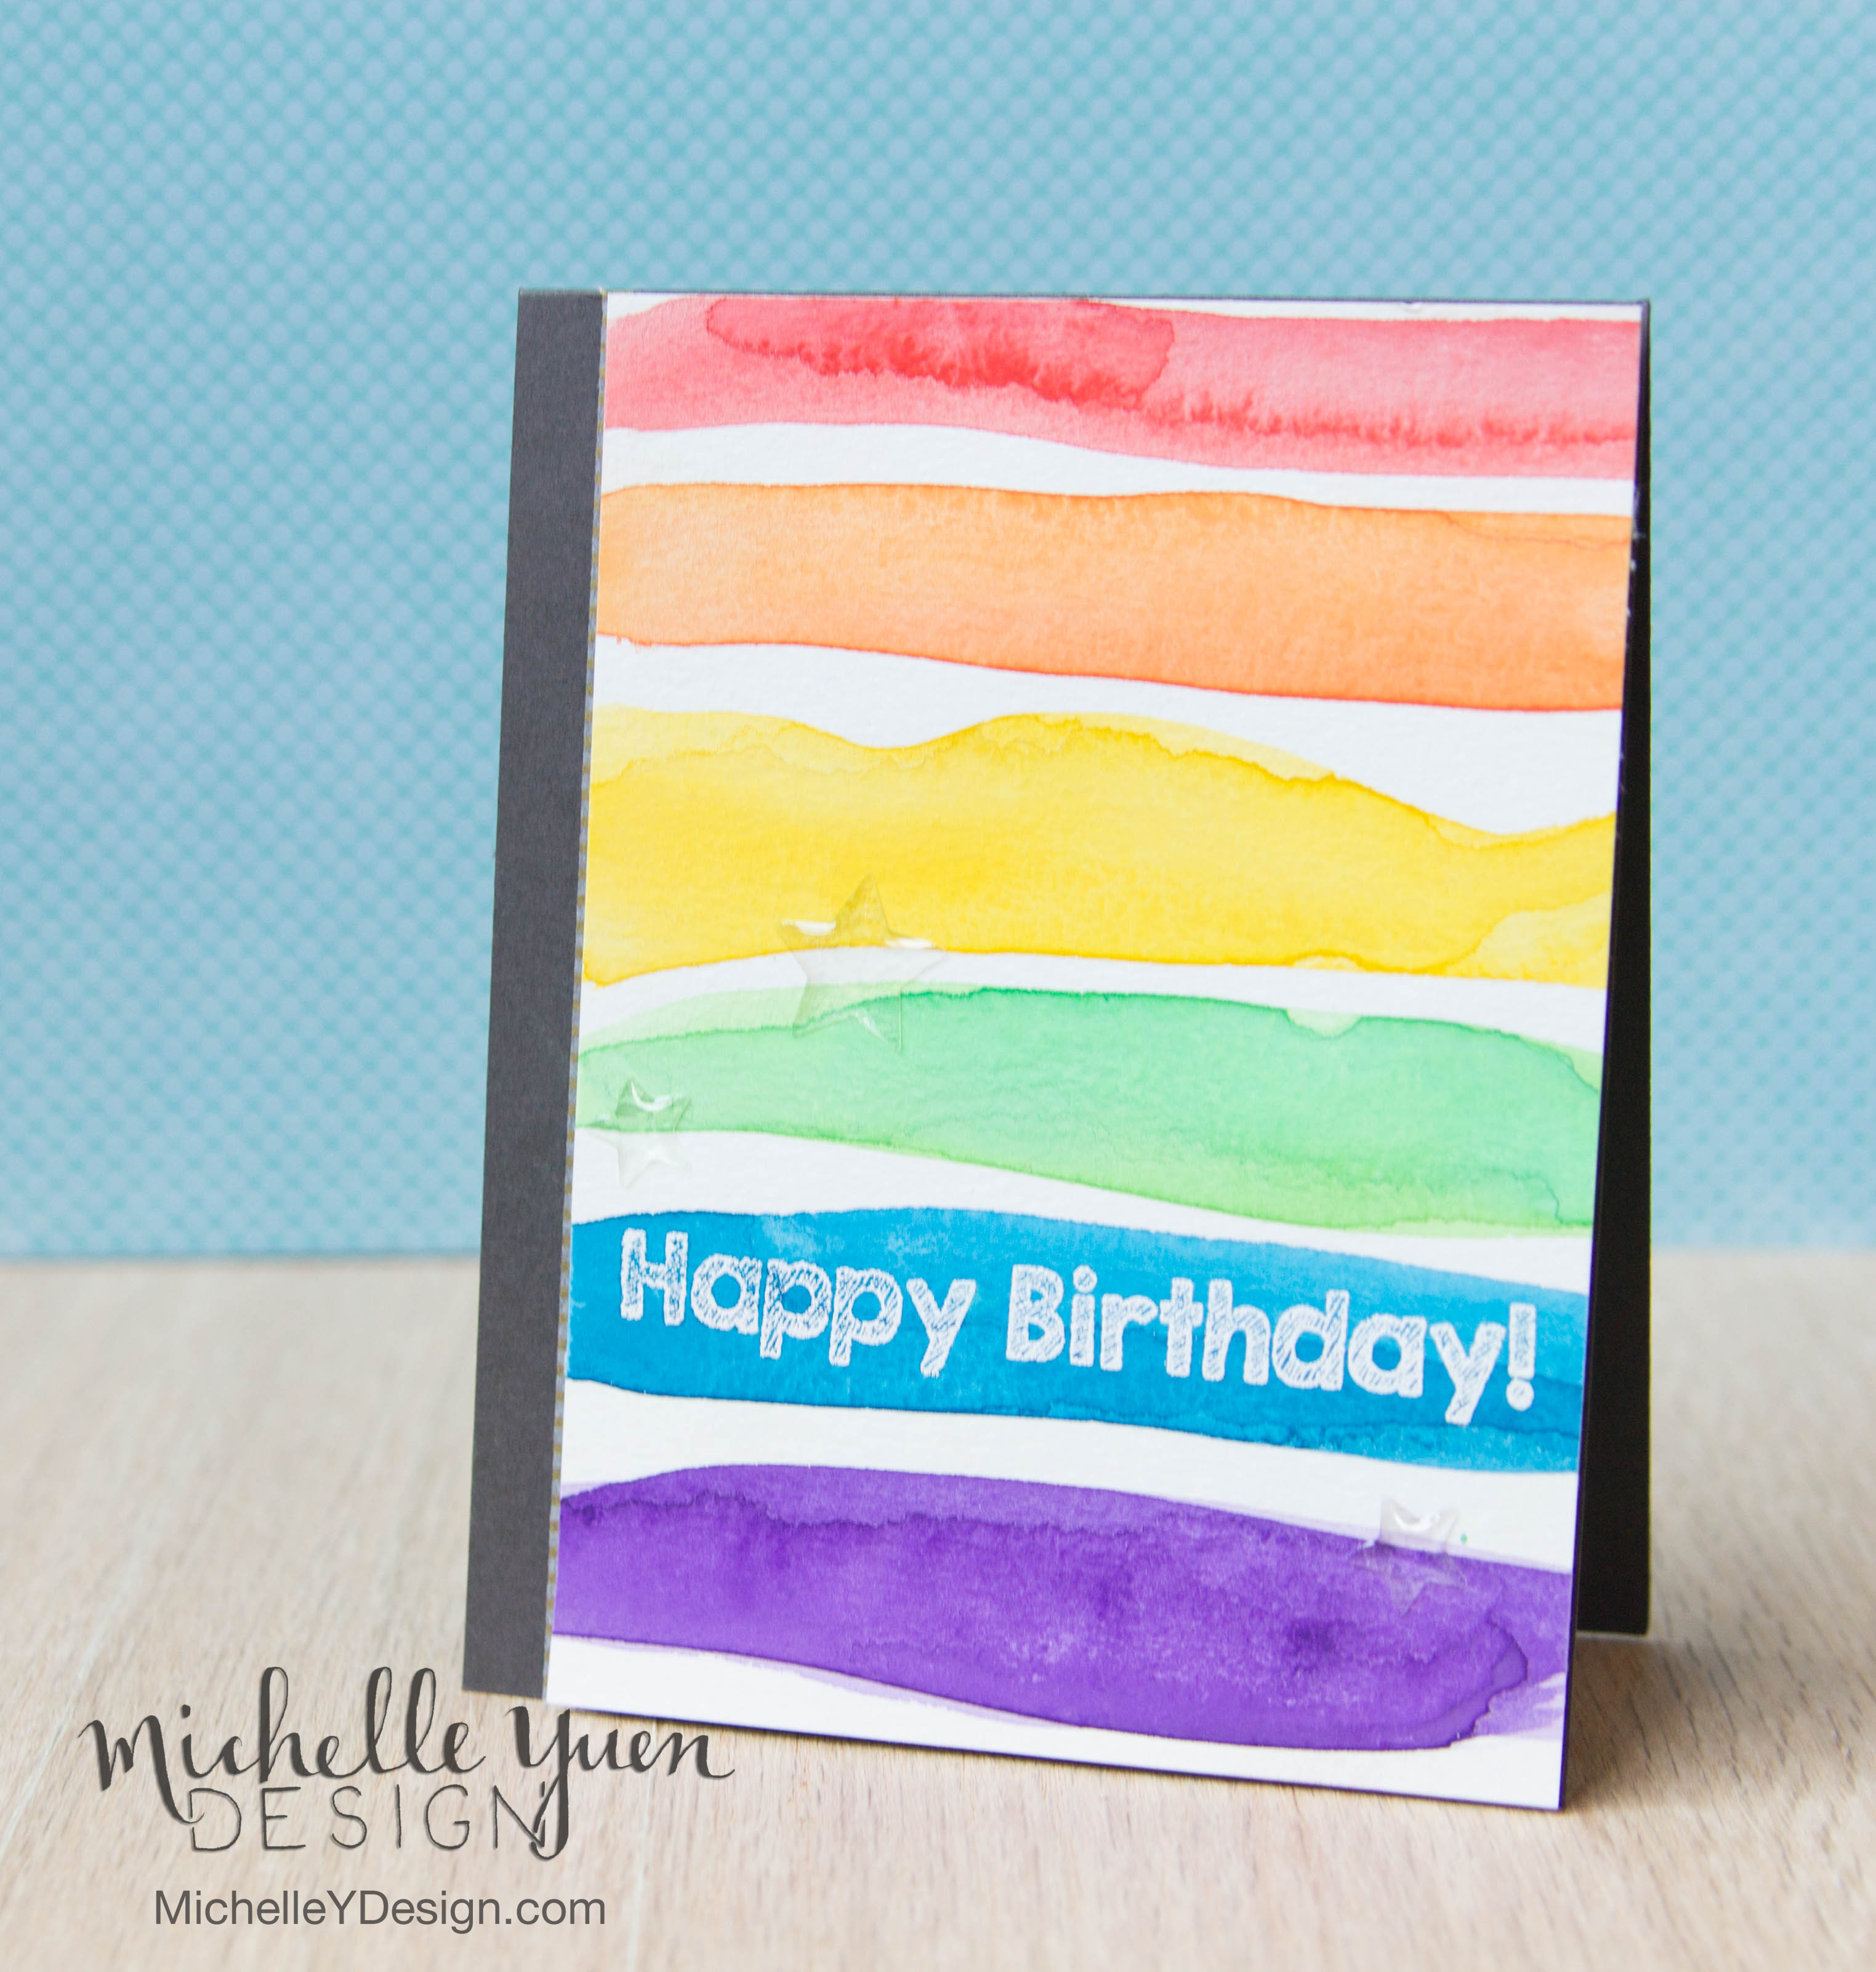 Basically You Can Make This Card With Just Watercolors And A Sentiment Stamp The Im Using Is From Awesome Birthday Wishes Set Pink